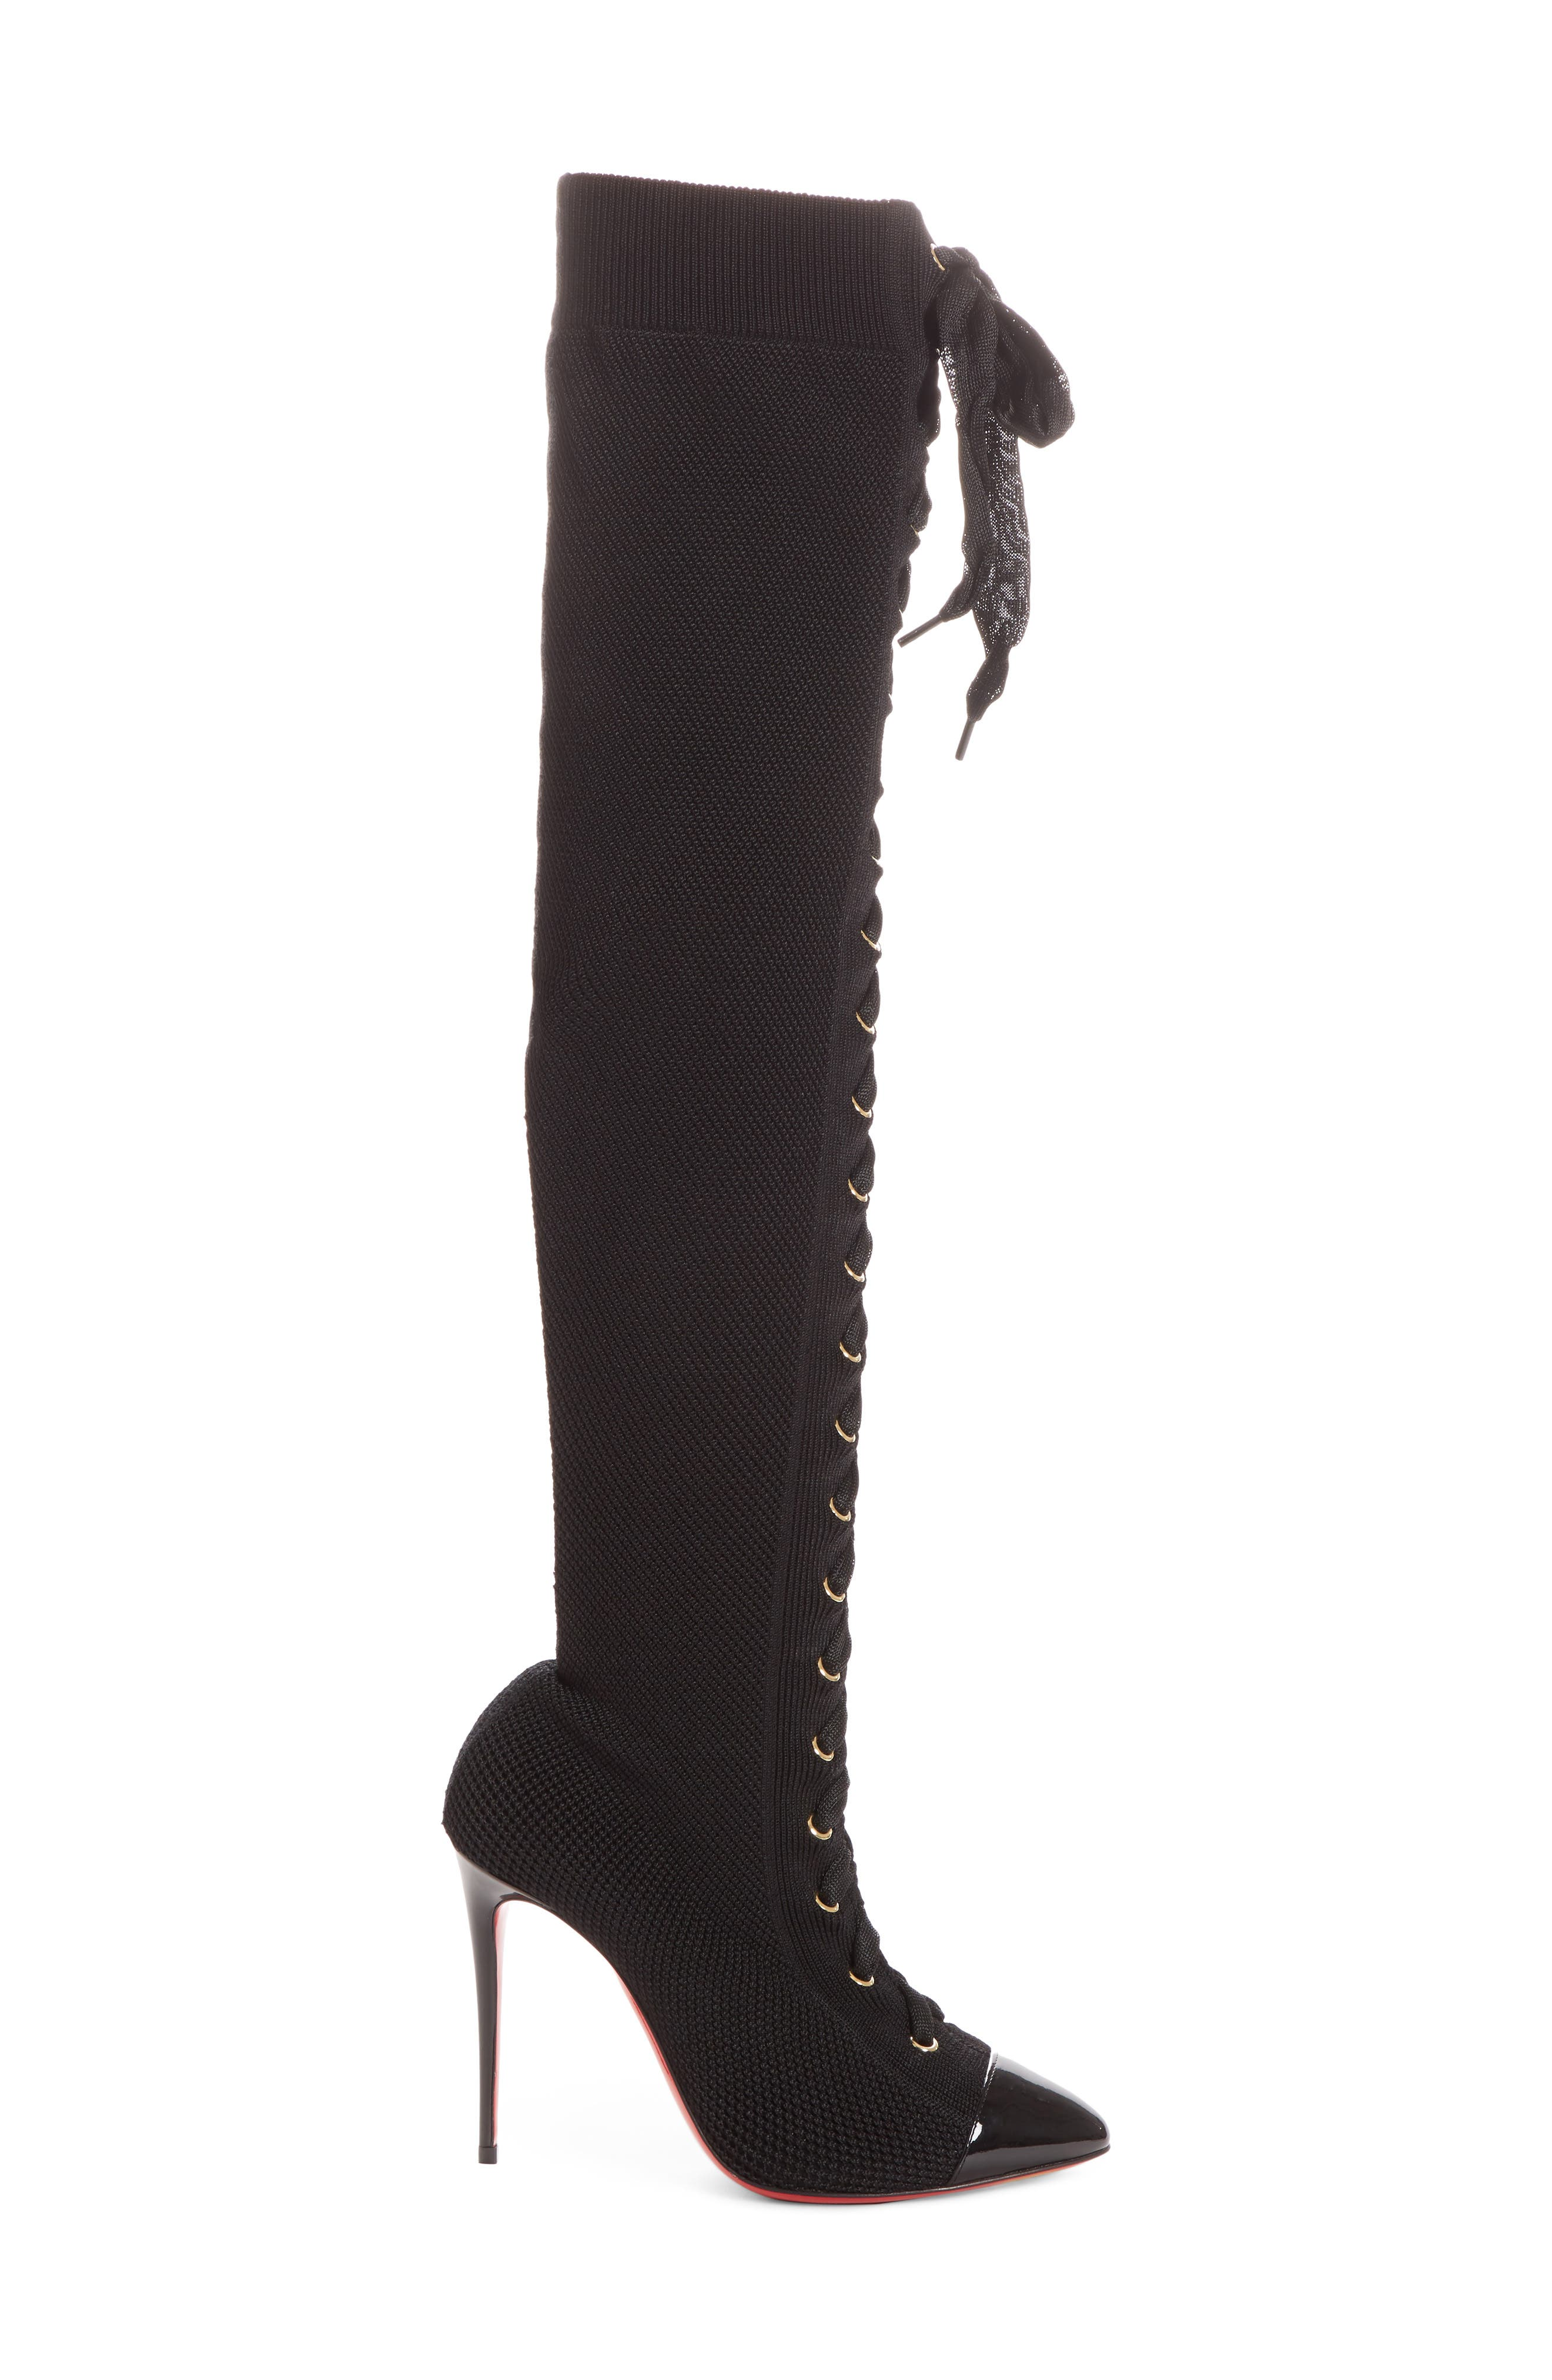 CHRISTIAN LOUBOUTIN,                             Frenchie Lace-Up Over the Knee Sock Boot,                             Alternate thumbnail 3, color,                             001